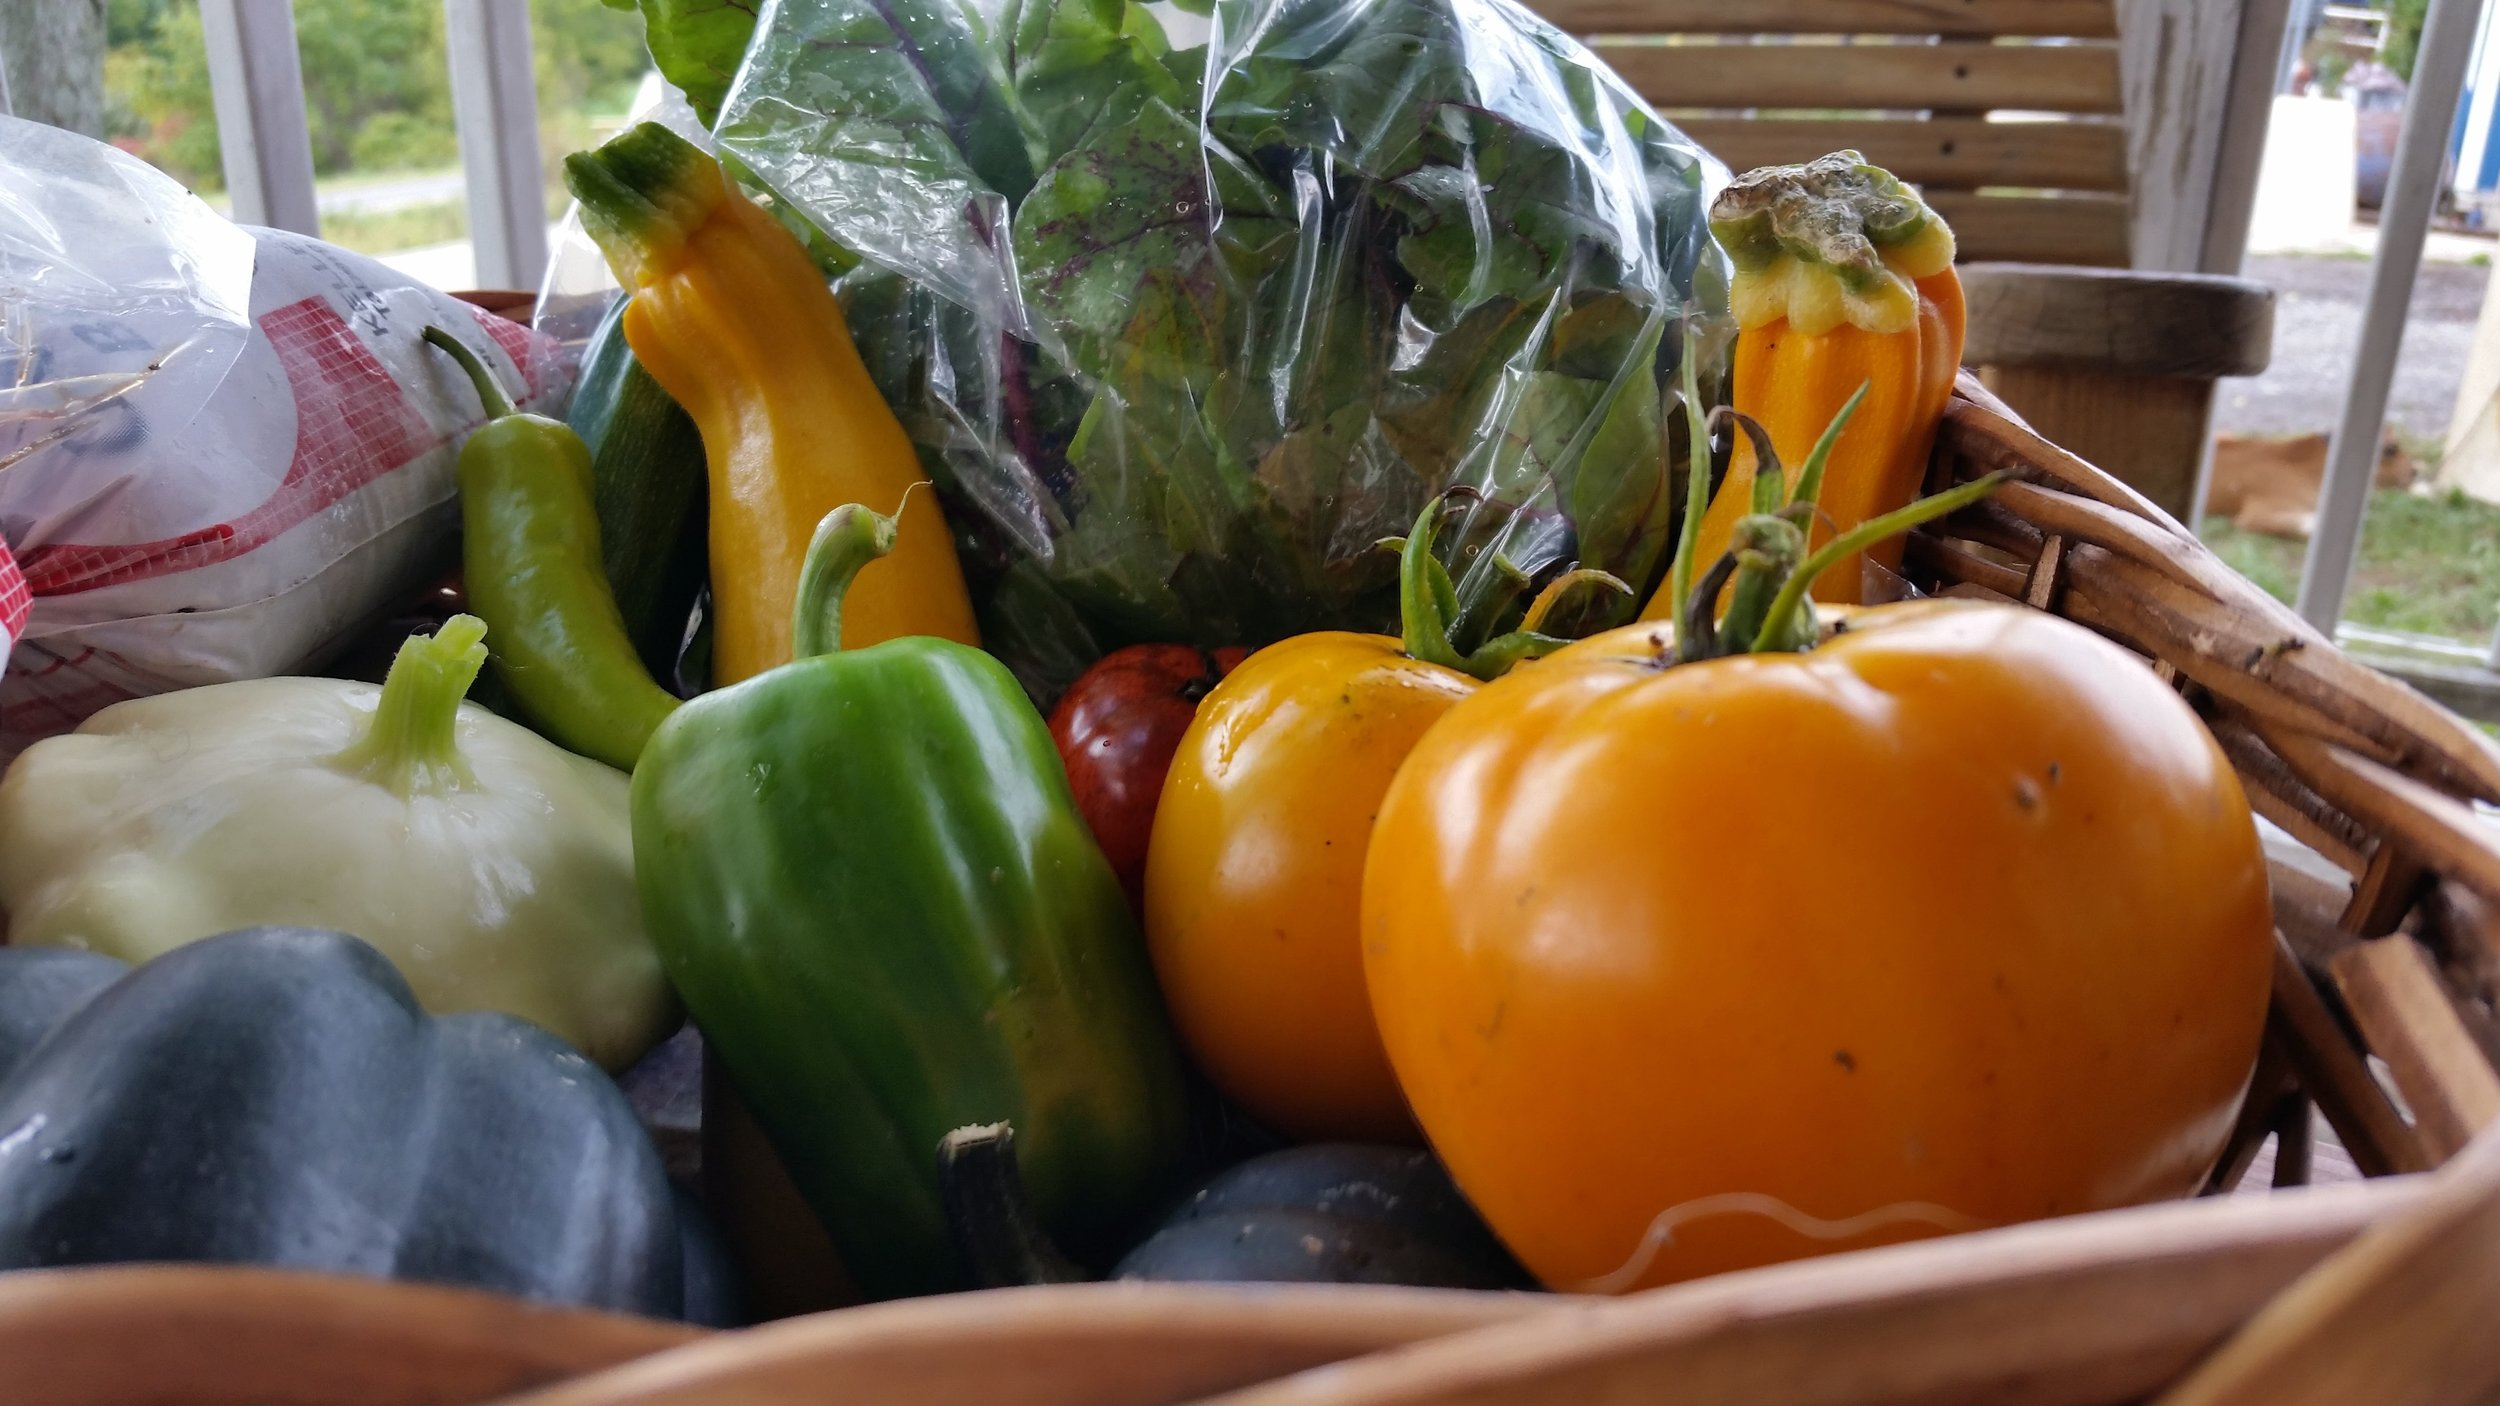 Green Peppers, Hot Peppers, Tomatoes, Acorn Squash, Leafy Greens, Summer Squash, Ground Beef, and a Porterhouse Steak fill this mid-September basket.